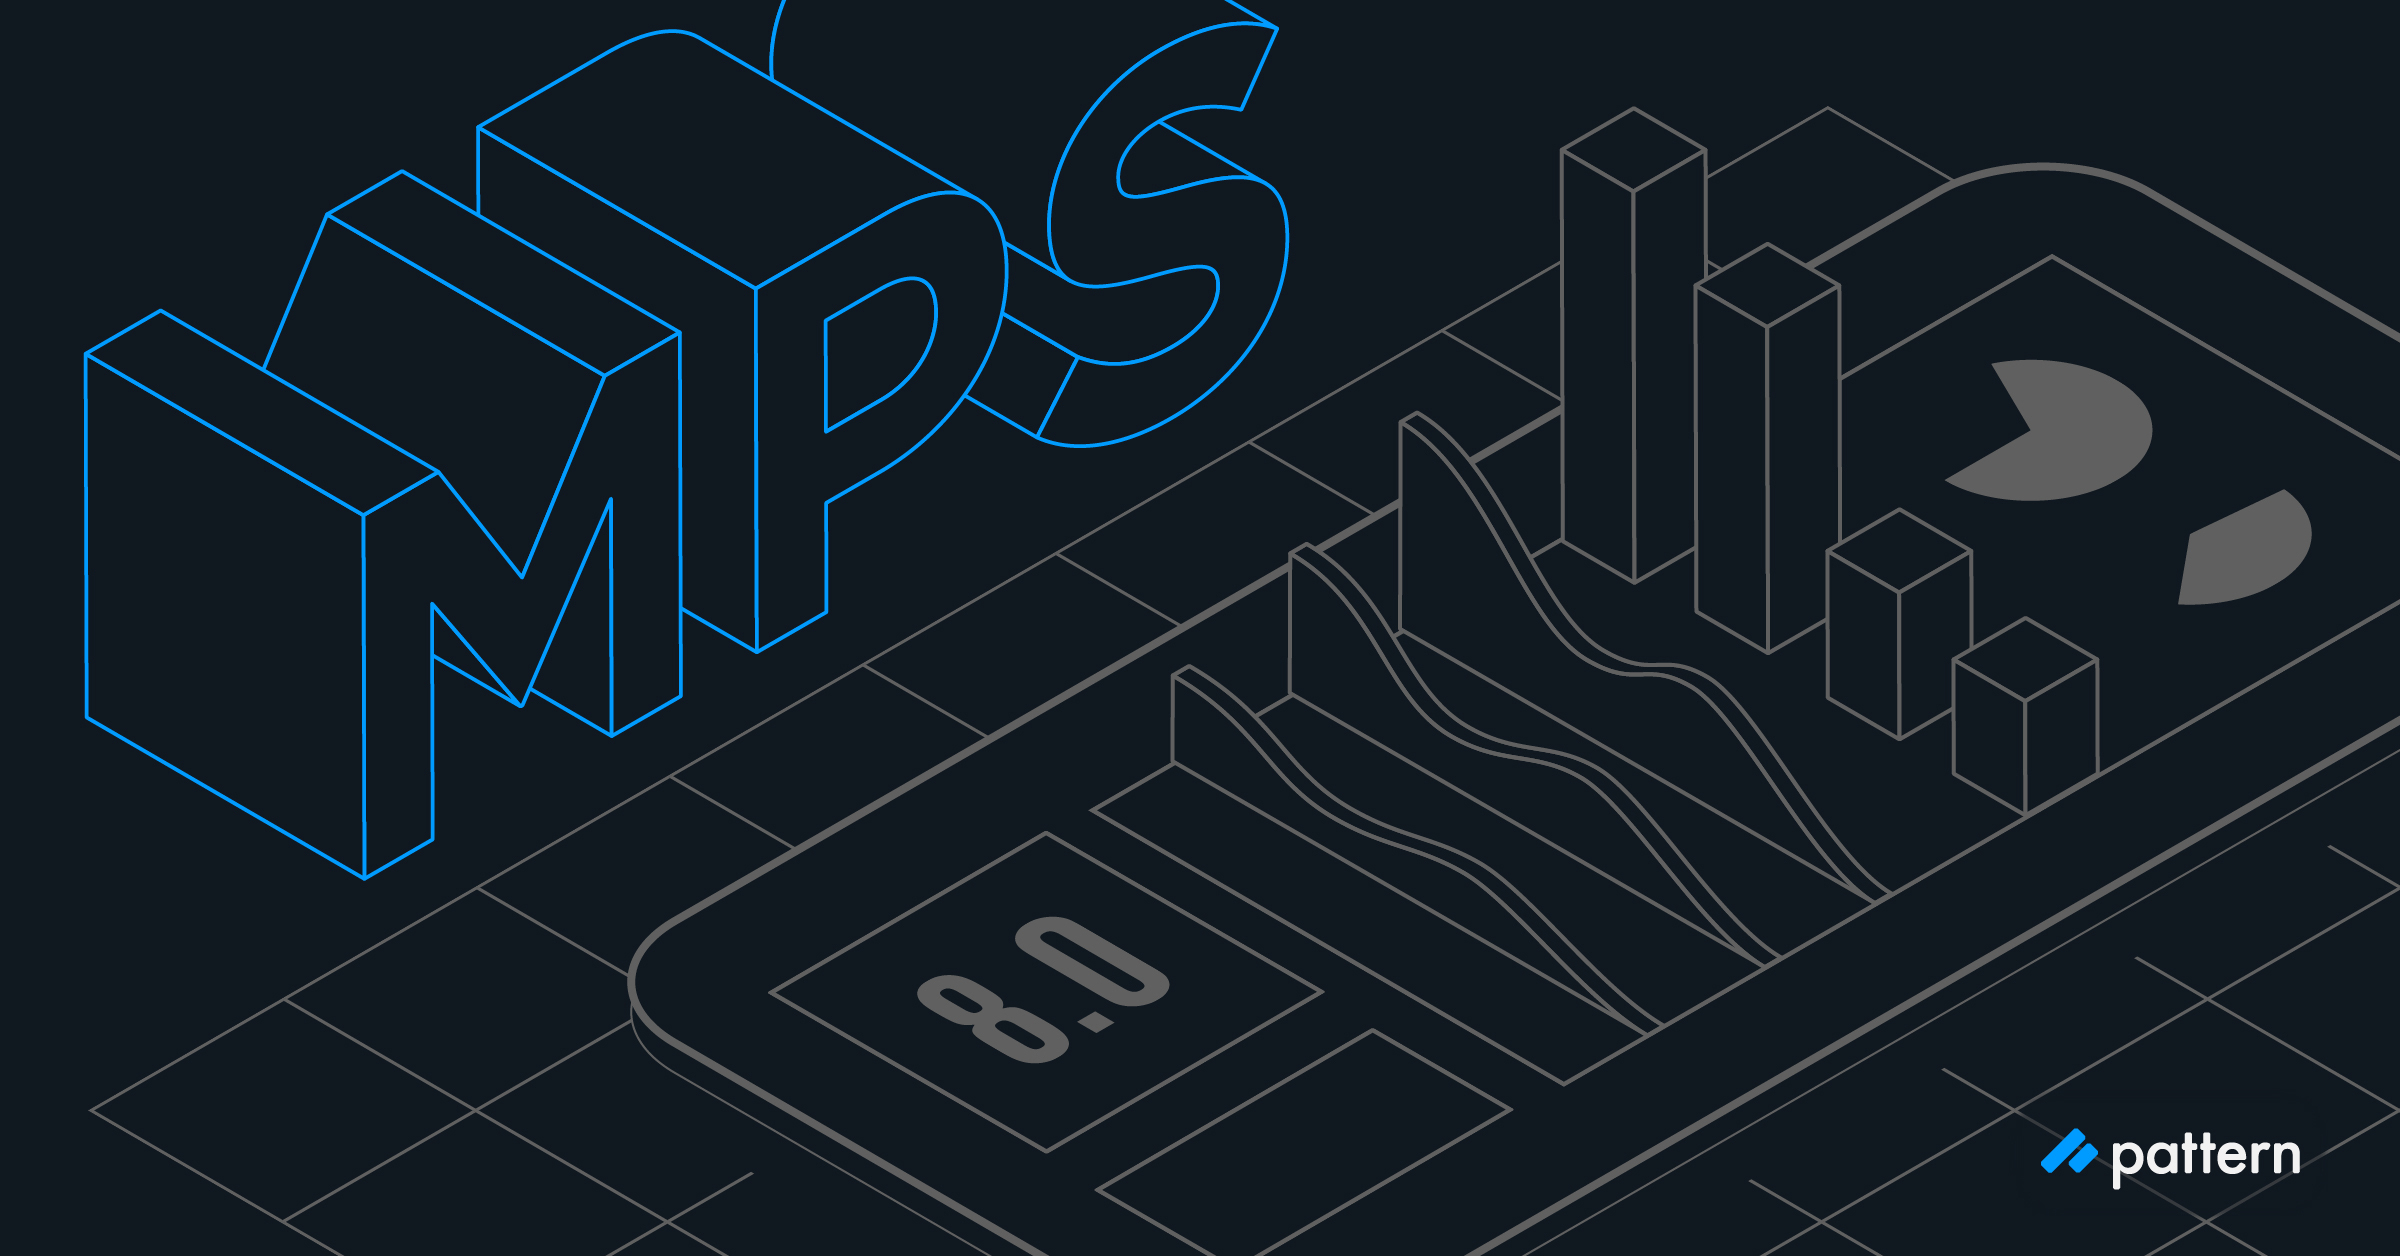 Pattern Launches MPS to Help Brands Understand Ecommerce Revenue Potential